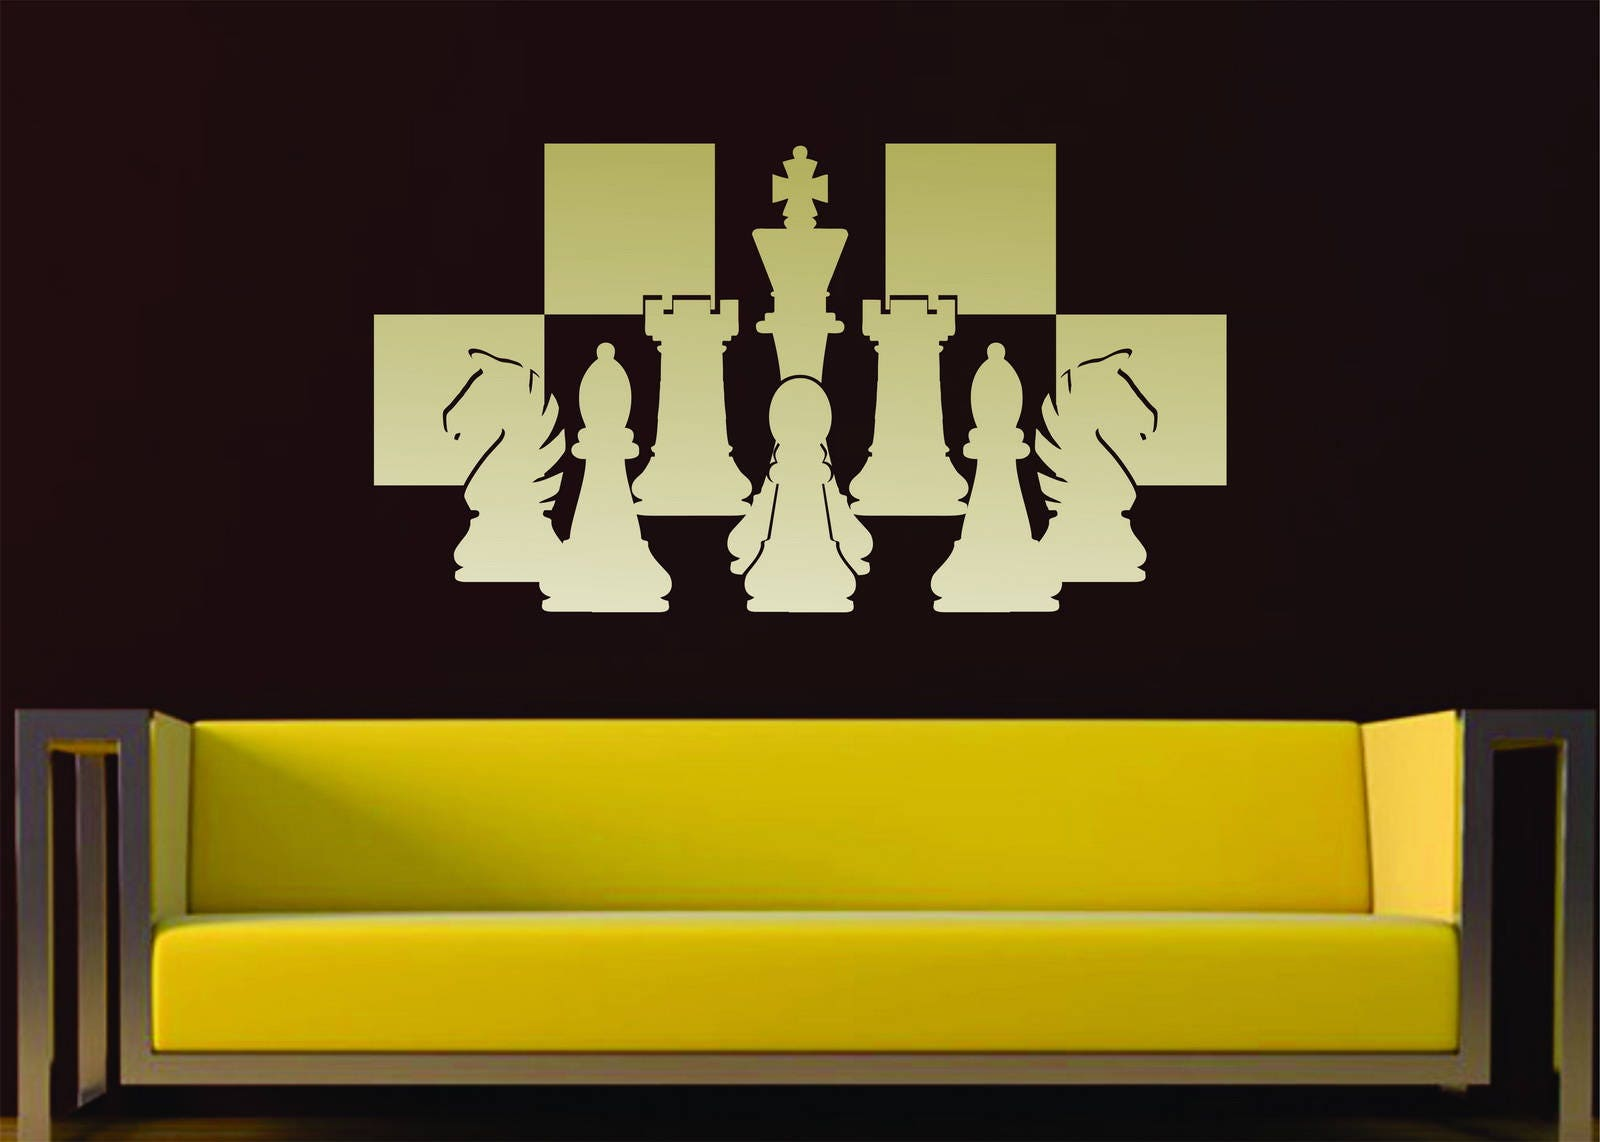 Chess Pieces Chessboard Setup Board Game Strategy Vinyl Wall Art ...